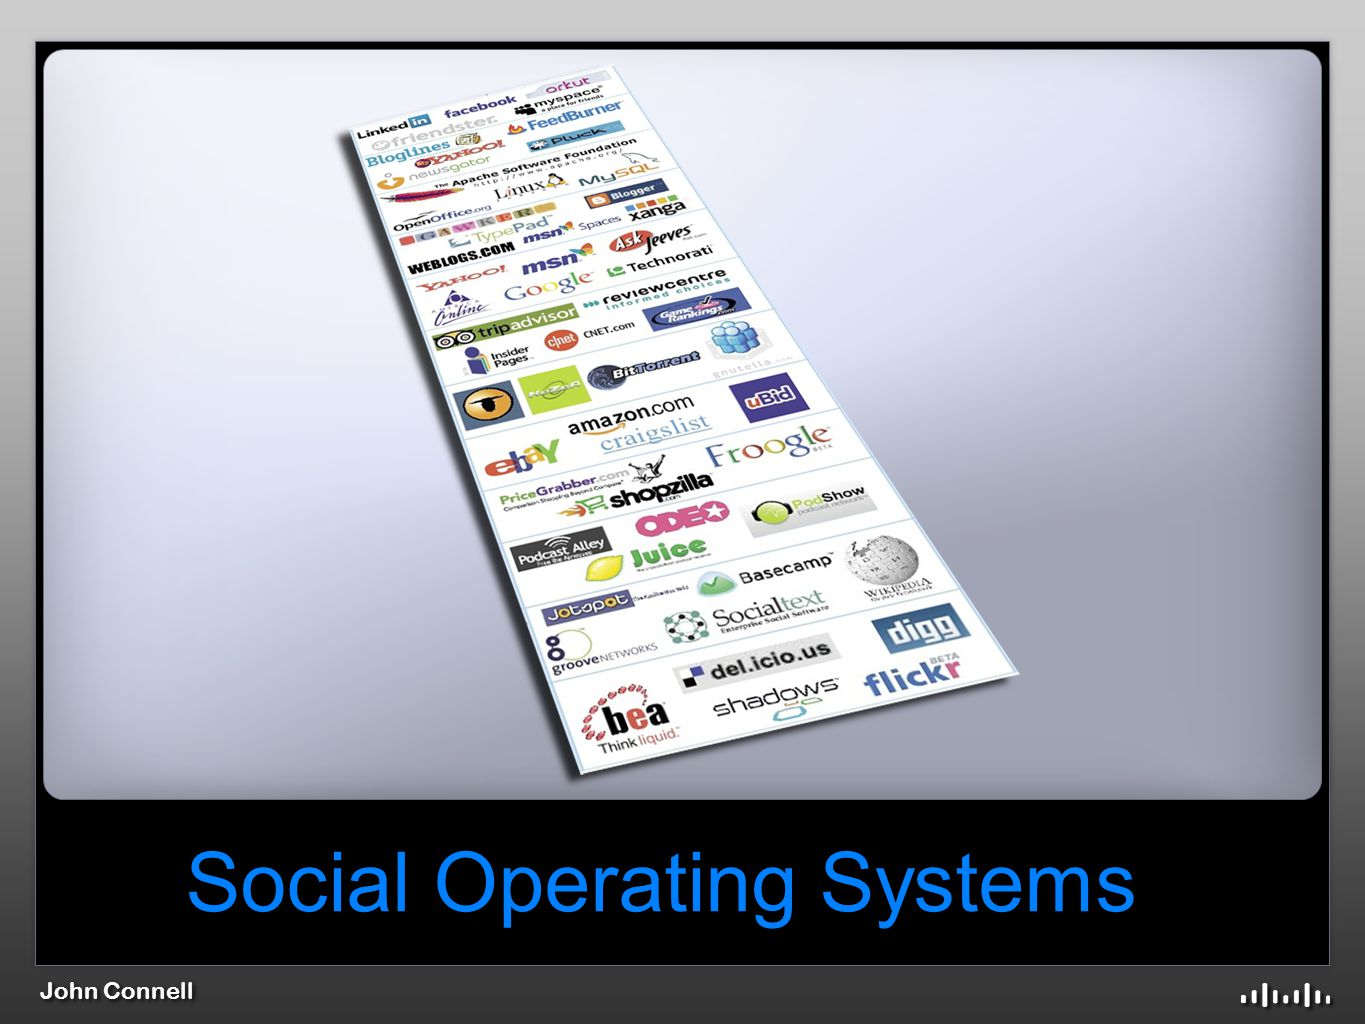 John Connell Social Operating Systems